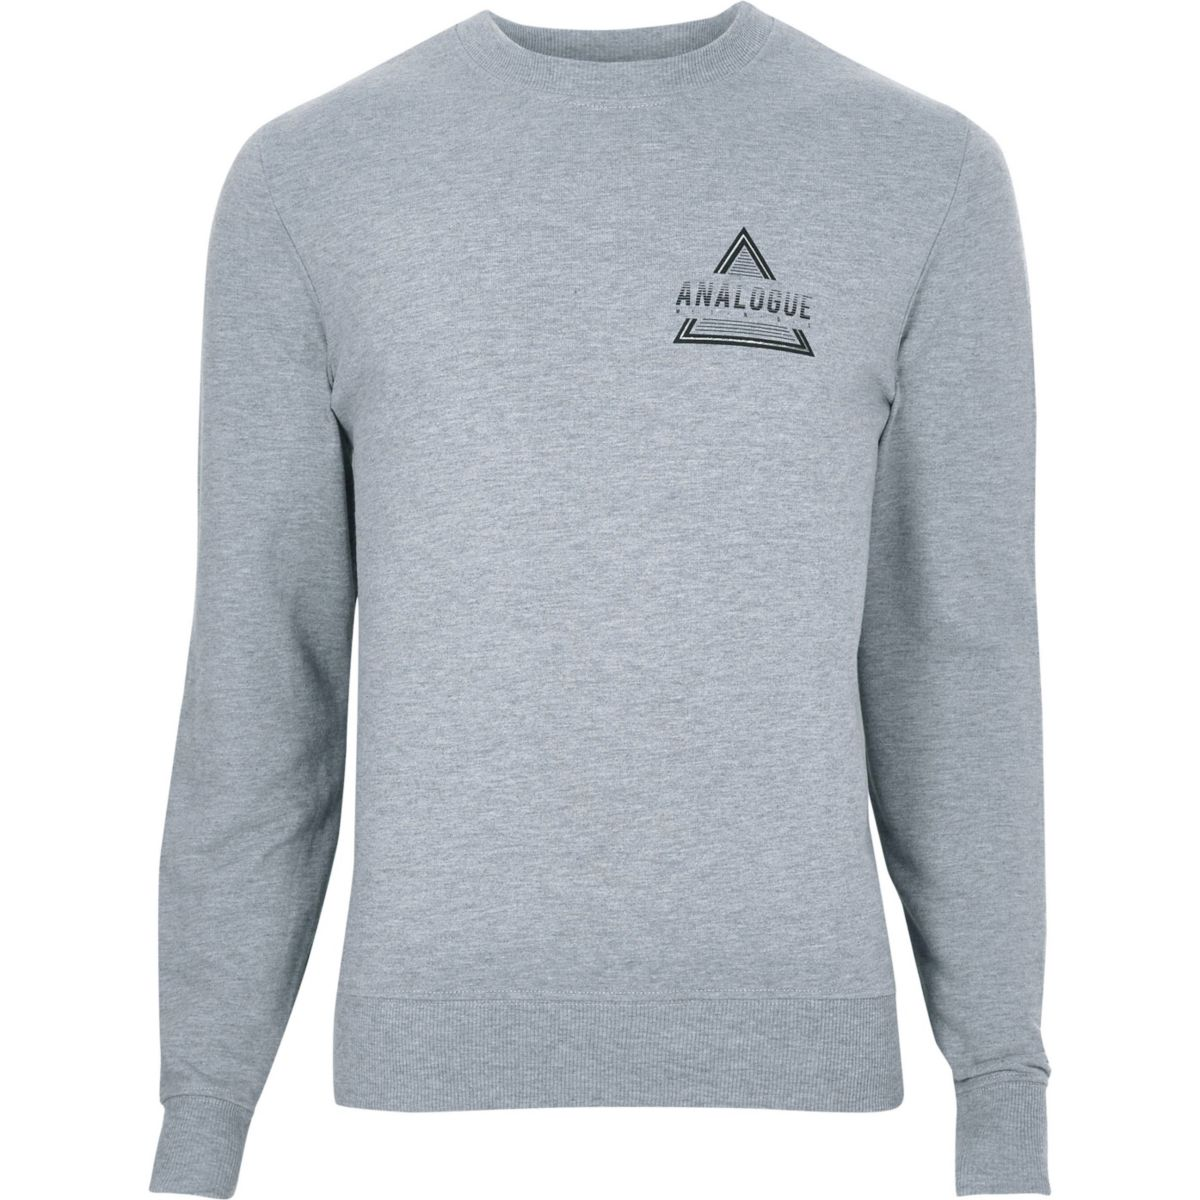 Grey marl 'analogue' print sweatshirt